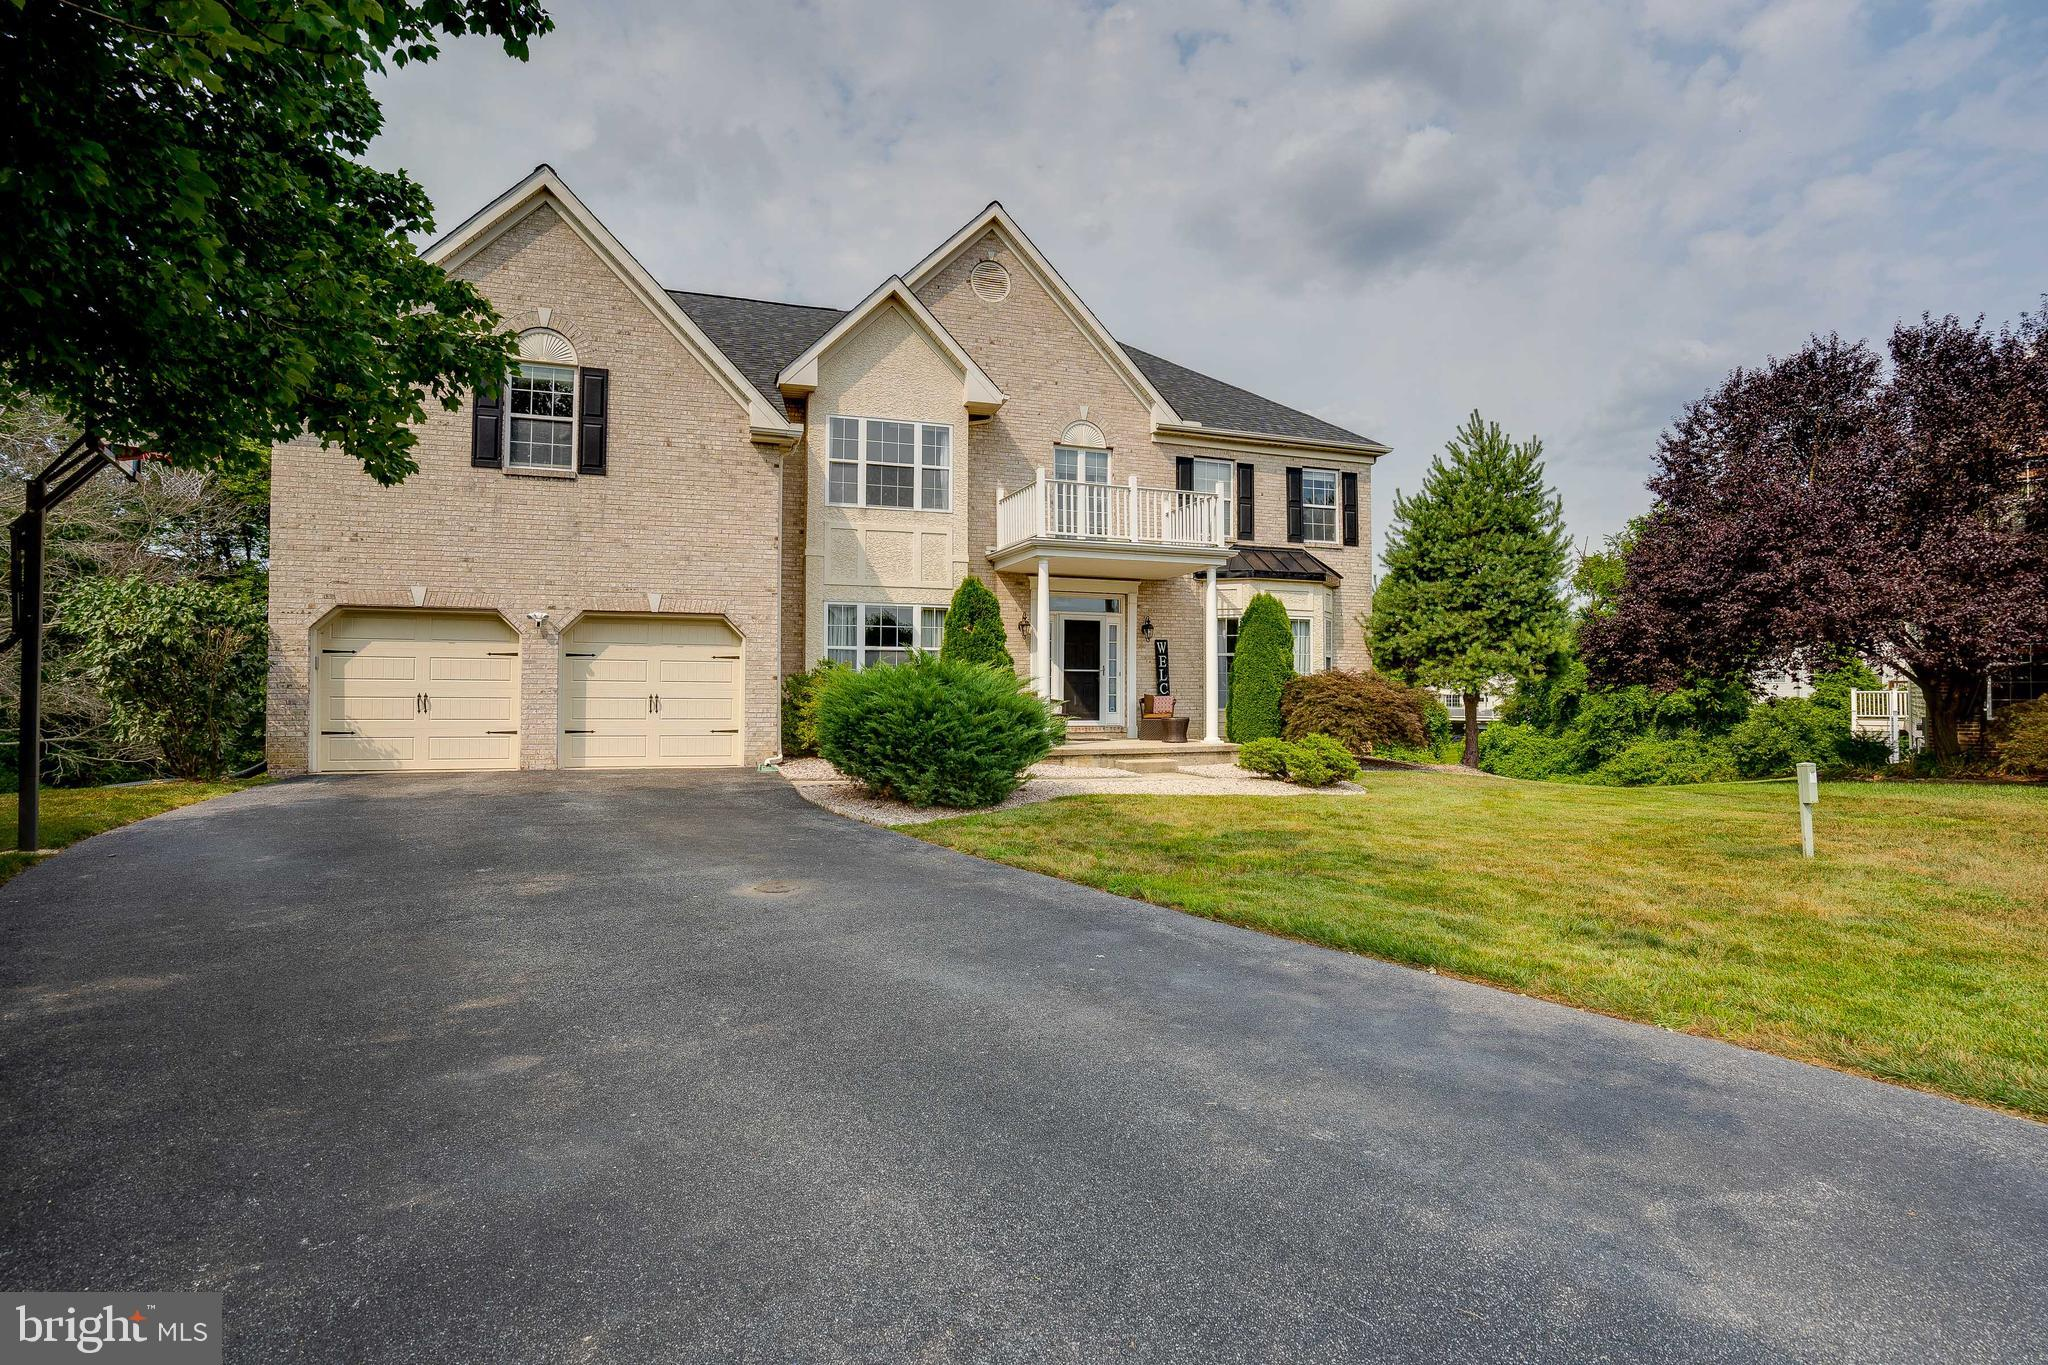 You do not want to miss this stunning home with many upgrades!  Tucked away on a private cul-de-sac surrounded by golfing and parks this home will not disappoint.  The first floor features a nice open floor plan. The large eat-in kitchen  opens up to the deck . There is a double sided fireplace between the kitchen and family room. The large family room has vaulted ceilings adding to the open feel. There is a home office, living room and dining room as well.  Beautiful hardwood floors and trim work make this home feel special.  The Master Suite includes space for an office or sitting area, large full bath and separate walk in closets.  A 2nd bedroom has an ensuite full bath. The other two bedrooms share a full hall bath.  The walk out basement has been completely finished and has many windows with lots of natural light. There are 3 separate rooms that can be used as home offices, spare bedrooms or exercise space.  There is plenty of storage in the unfinished utility room. New dishwasher installed in 2020, kitchen refrigerator, oven, and stove  replaced in 2018, 1st floor carpeting installed in 2021, garage doors installed in 2019, 75 gallon water heater installed in 2021, freshly painted in 2021, new hardwood flooring installed in 2021, HVAC installed in 2017, new roof installed in 2017.